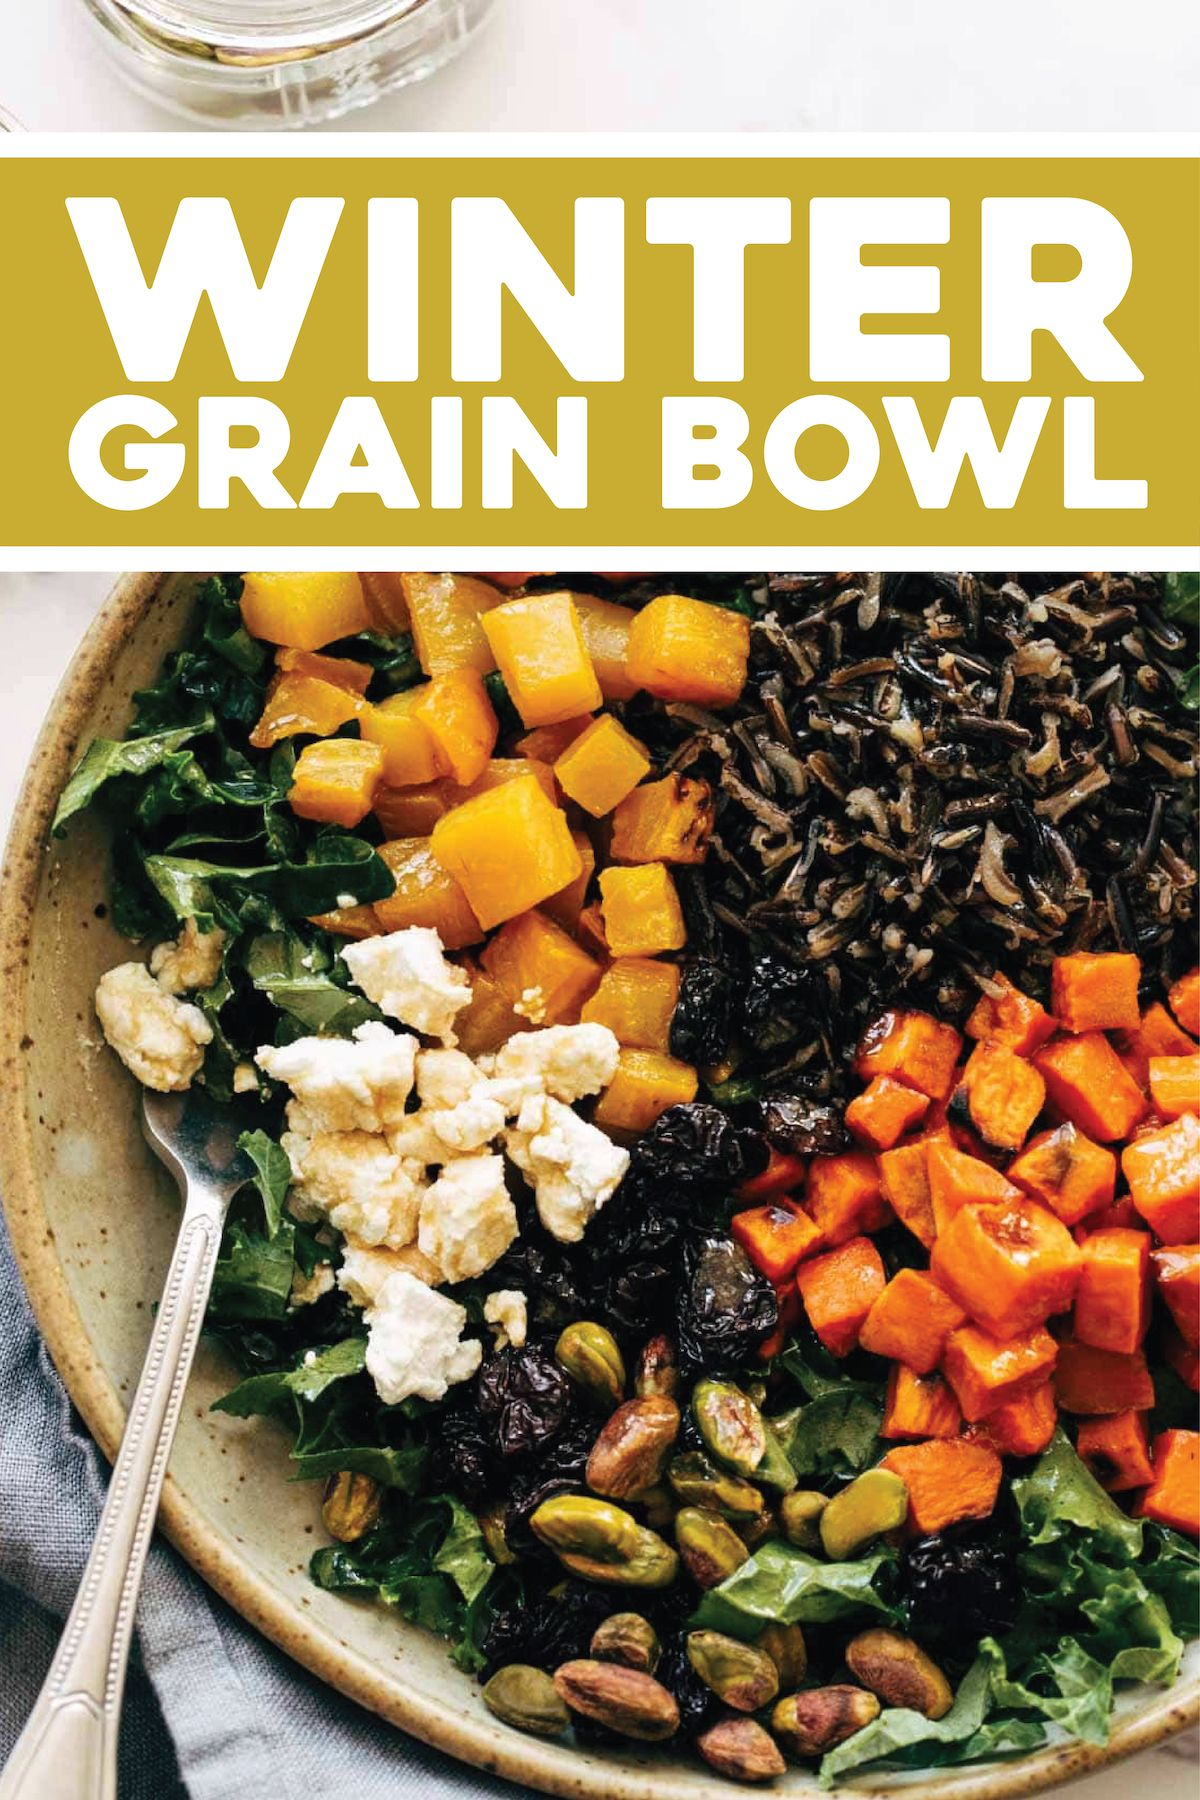 The BEST Winter Grain Bowl! Roasted root vegetables, earthy grains, dried fruit, dark leafy greens, buttery goat cheese, and lusciously creamy balsamic dressing. #salad #bowl #vegetarian #winterrecipe